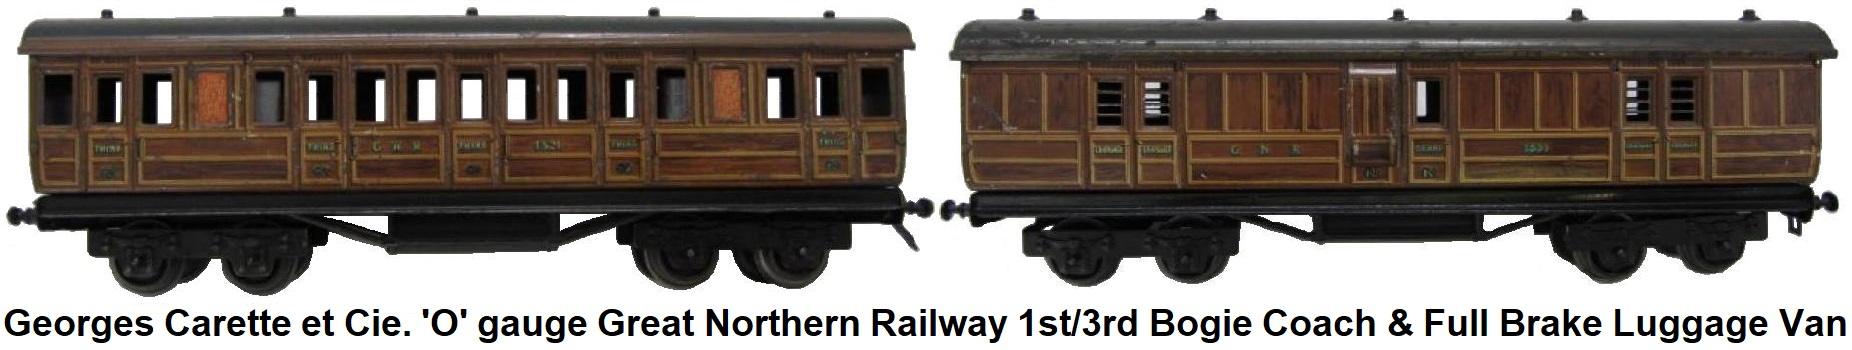 Carette 'O' gauge Great Northern Railway 1st/3rd Bogie Coach and Full Brake Luggage Van